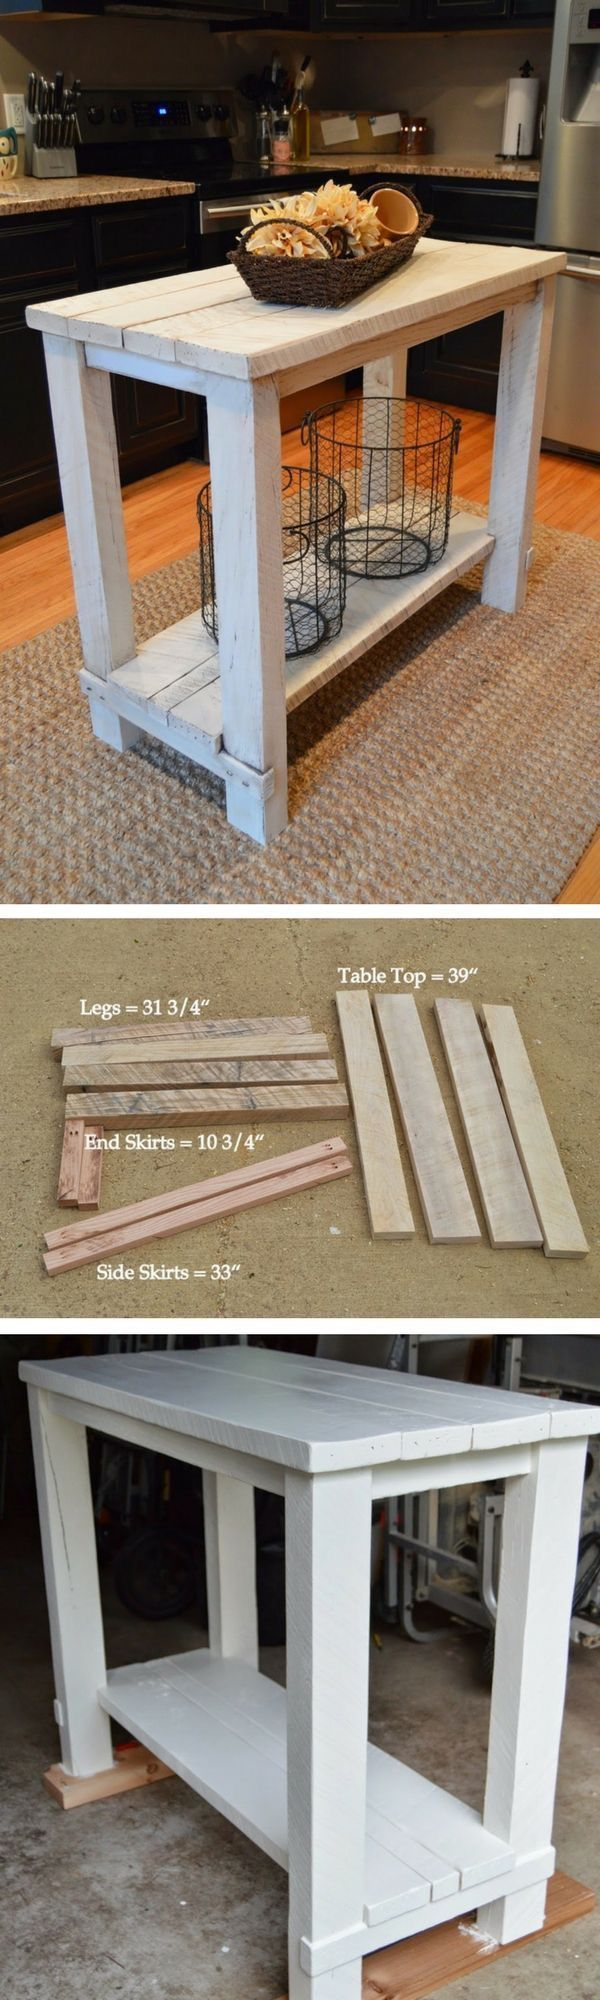 exciting kitchen island ideas decorating diy projects | DIY kitchen island, table, desk. Quick and simple #ad # ...